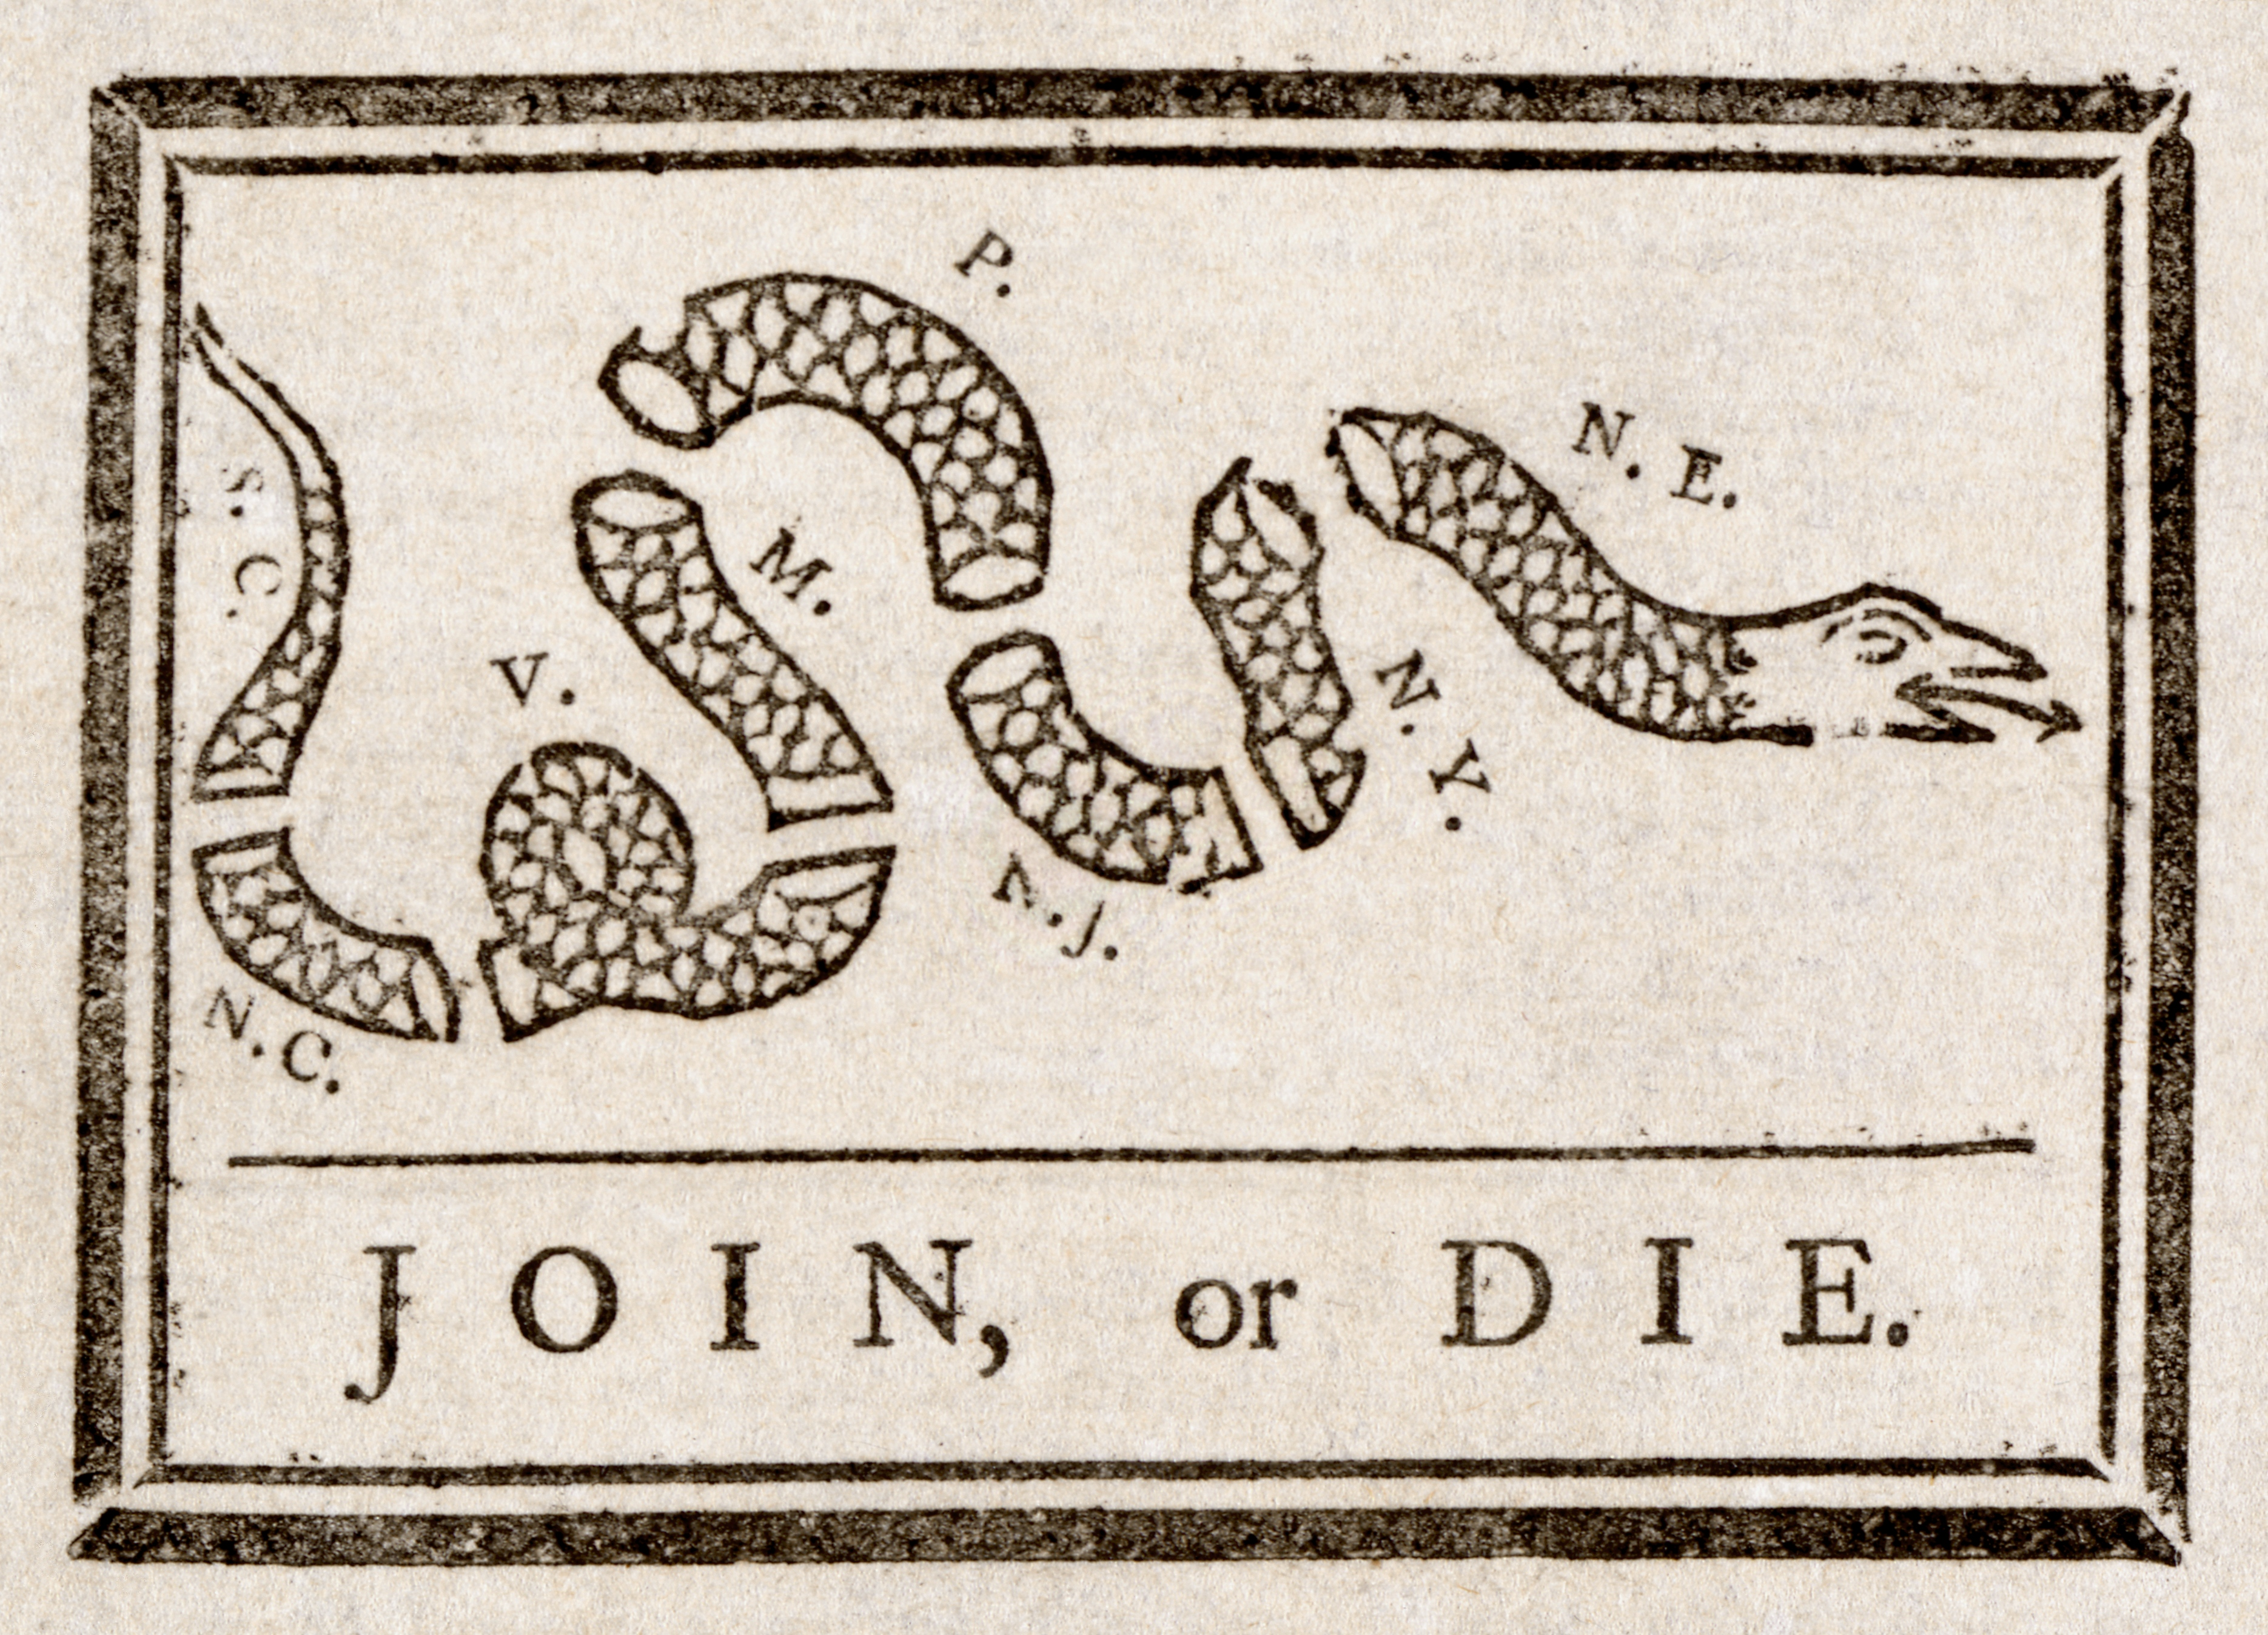 Join, or Die: This 1756 political cartoon by Benjamin Franklin urged the colonies to join together during the French and Indian War.